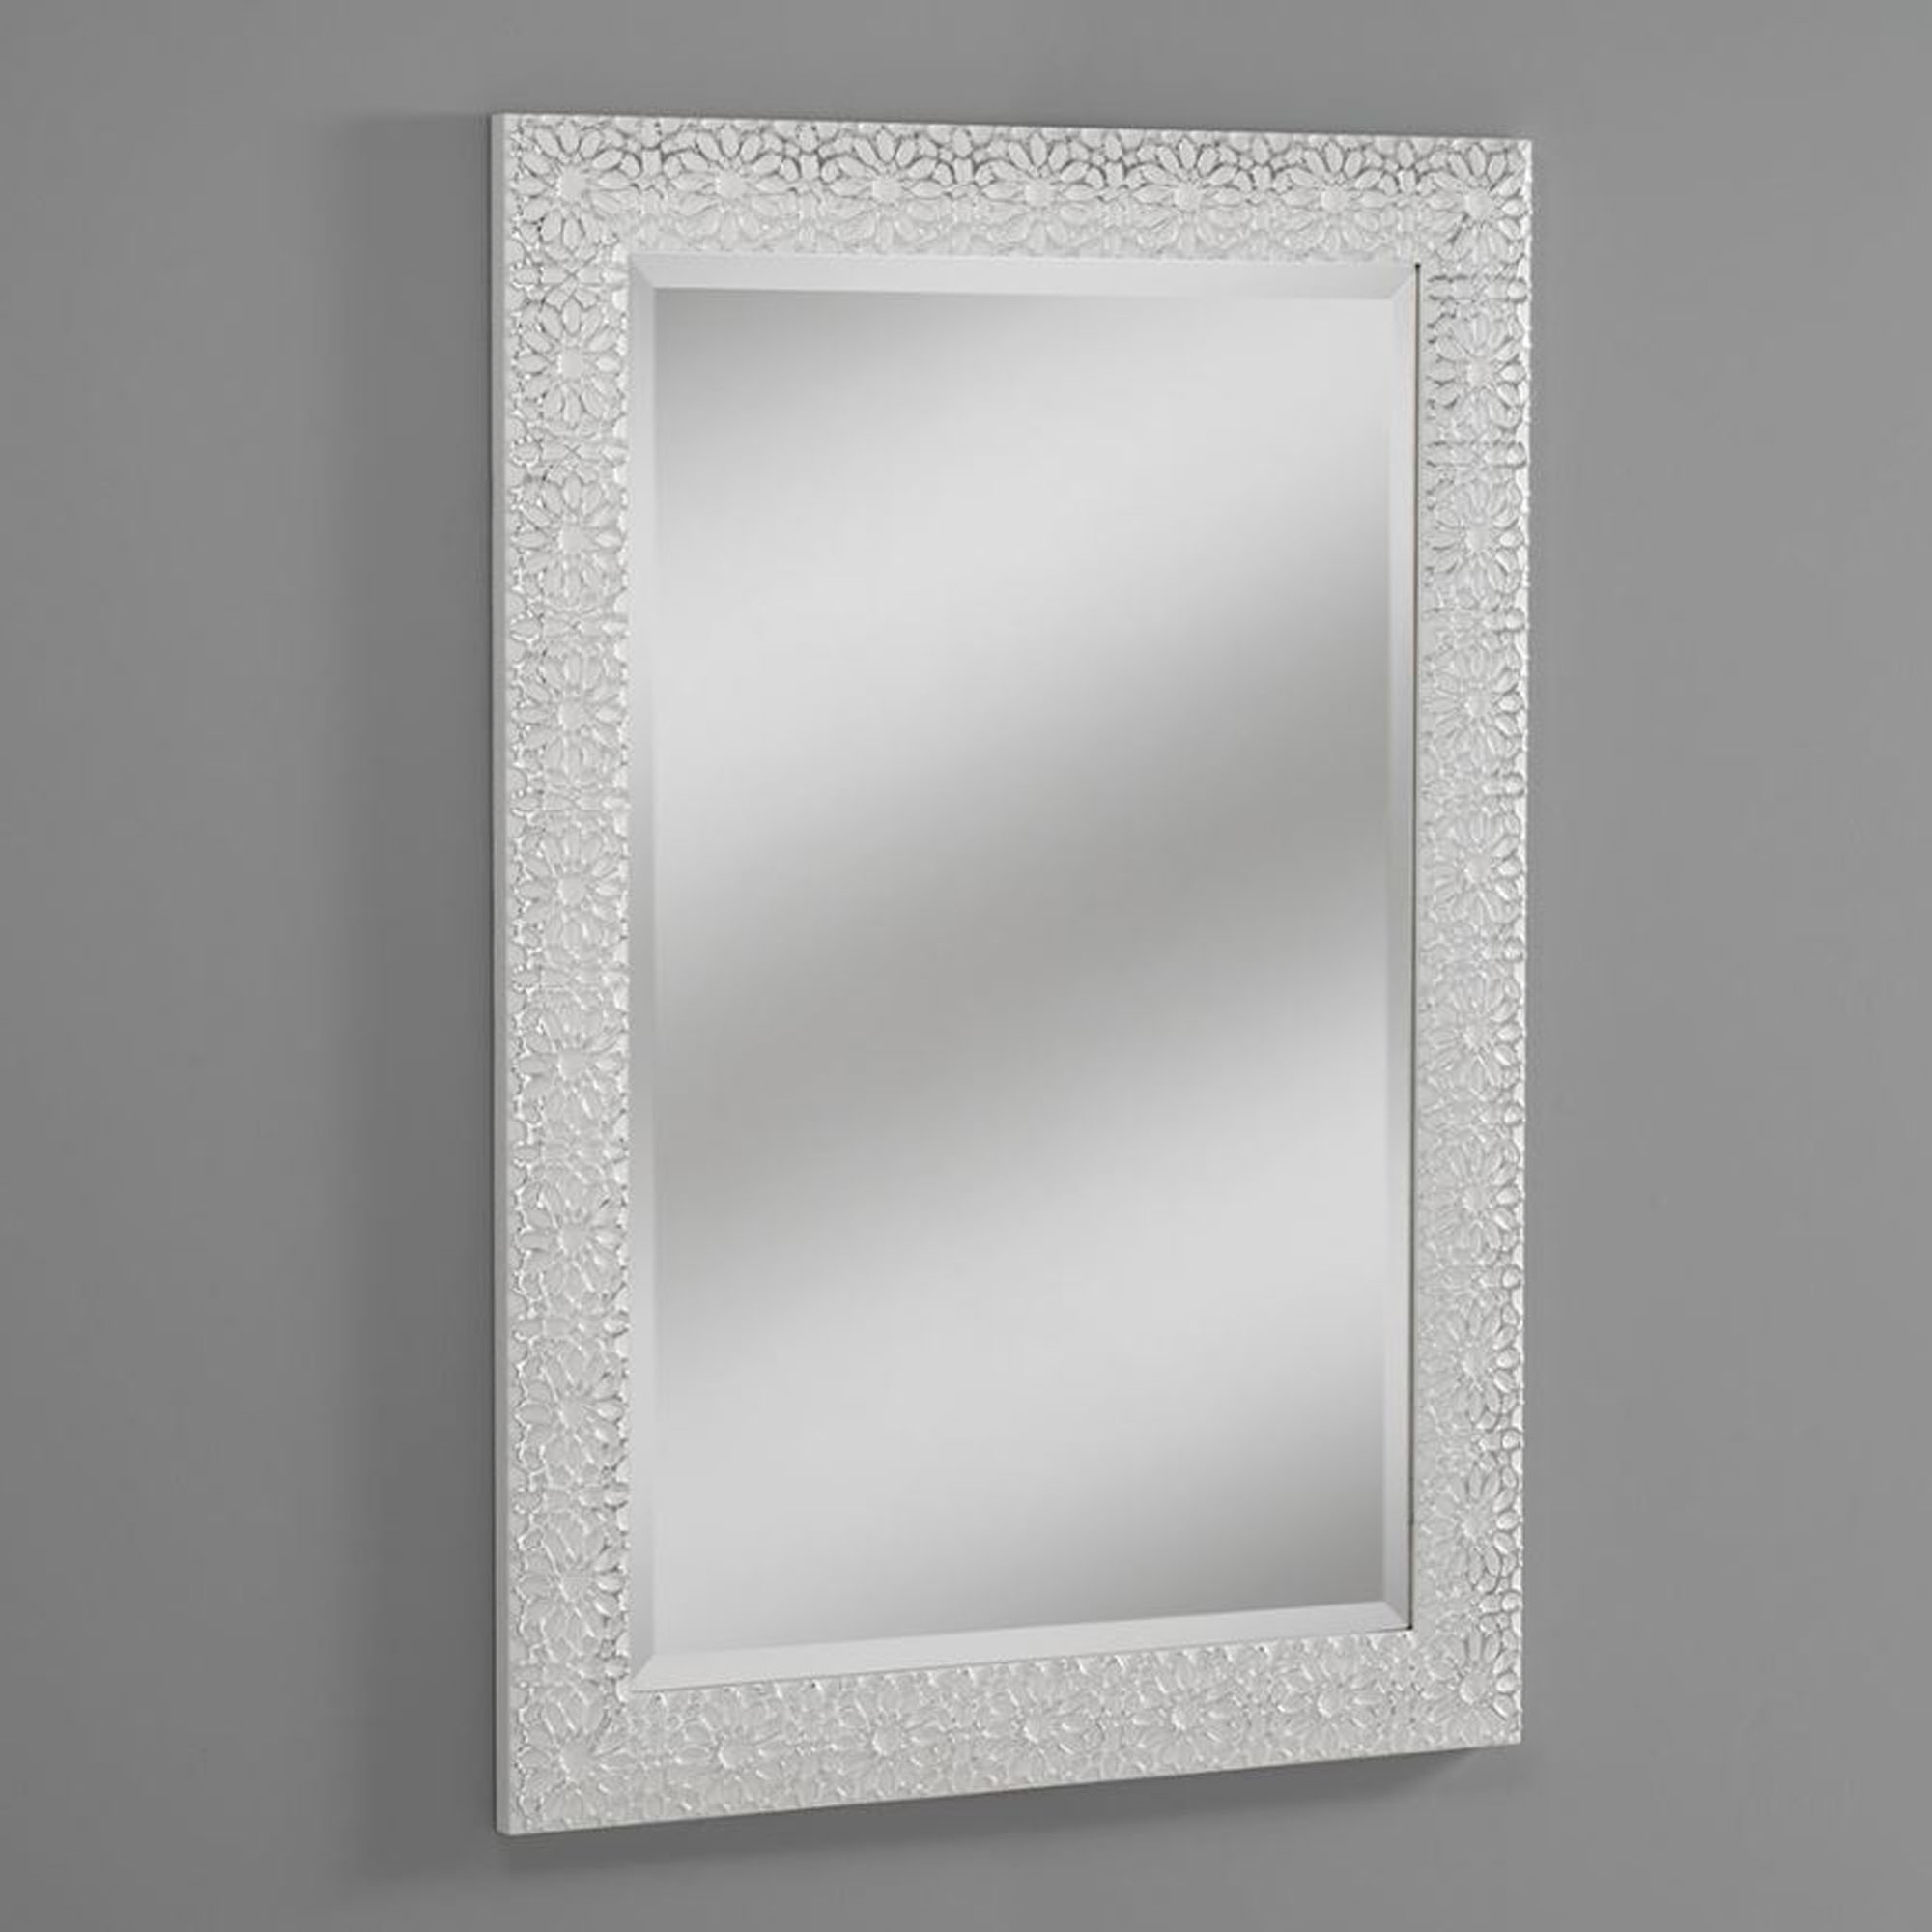 Decorative Cheap Wall Mirrors Inside Most Recent Petal White Decorative Wall Mirror (View 16 of 20)